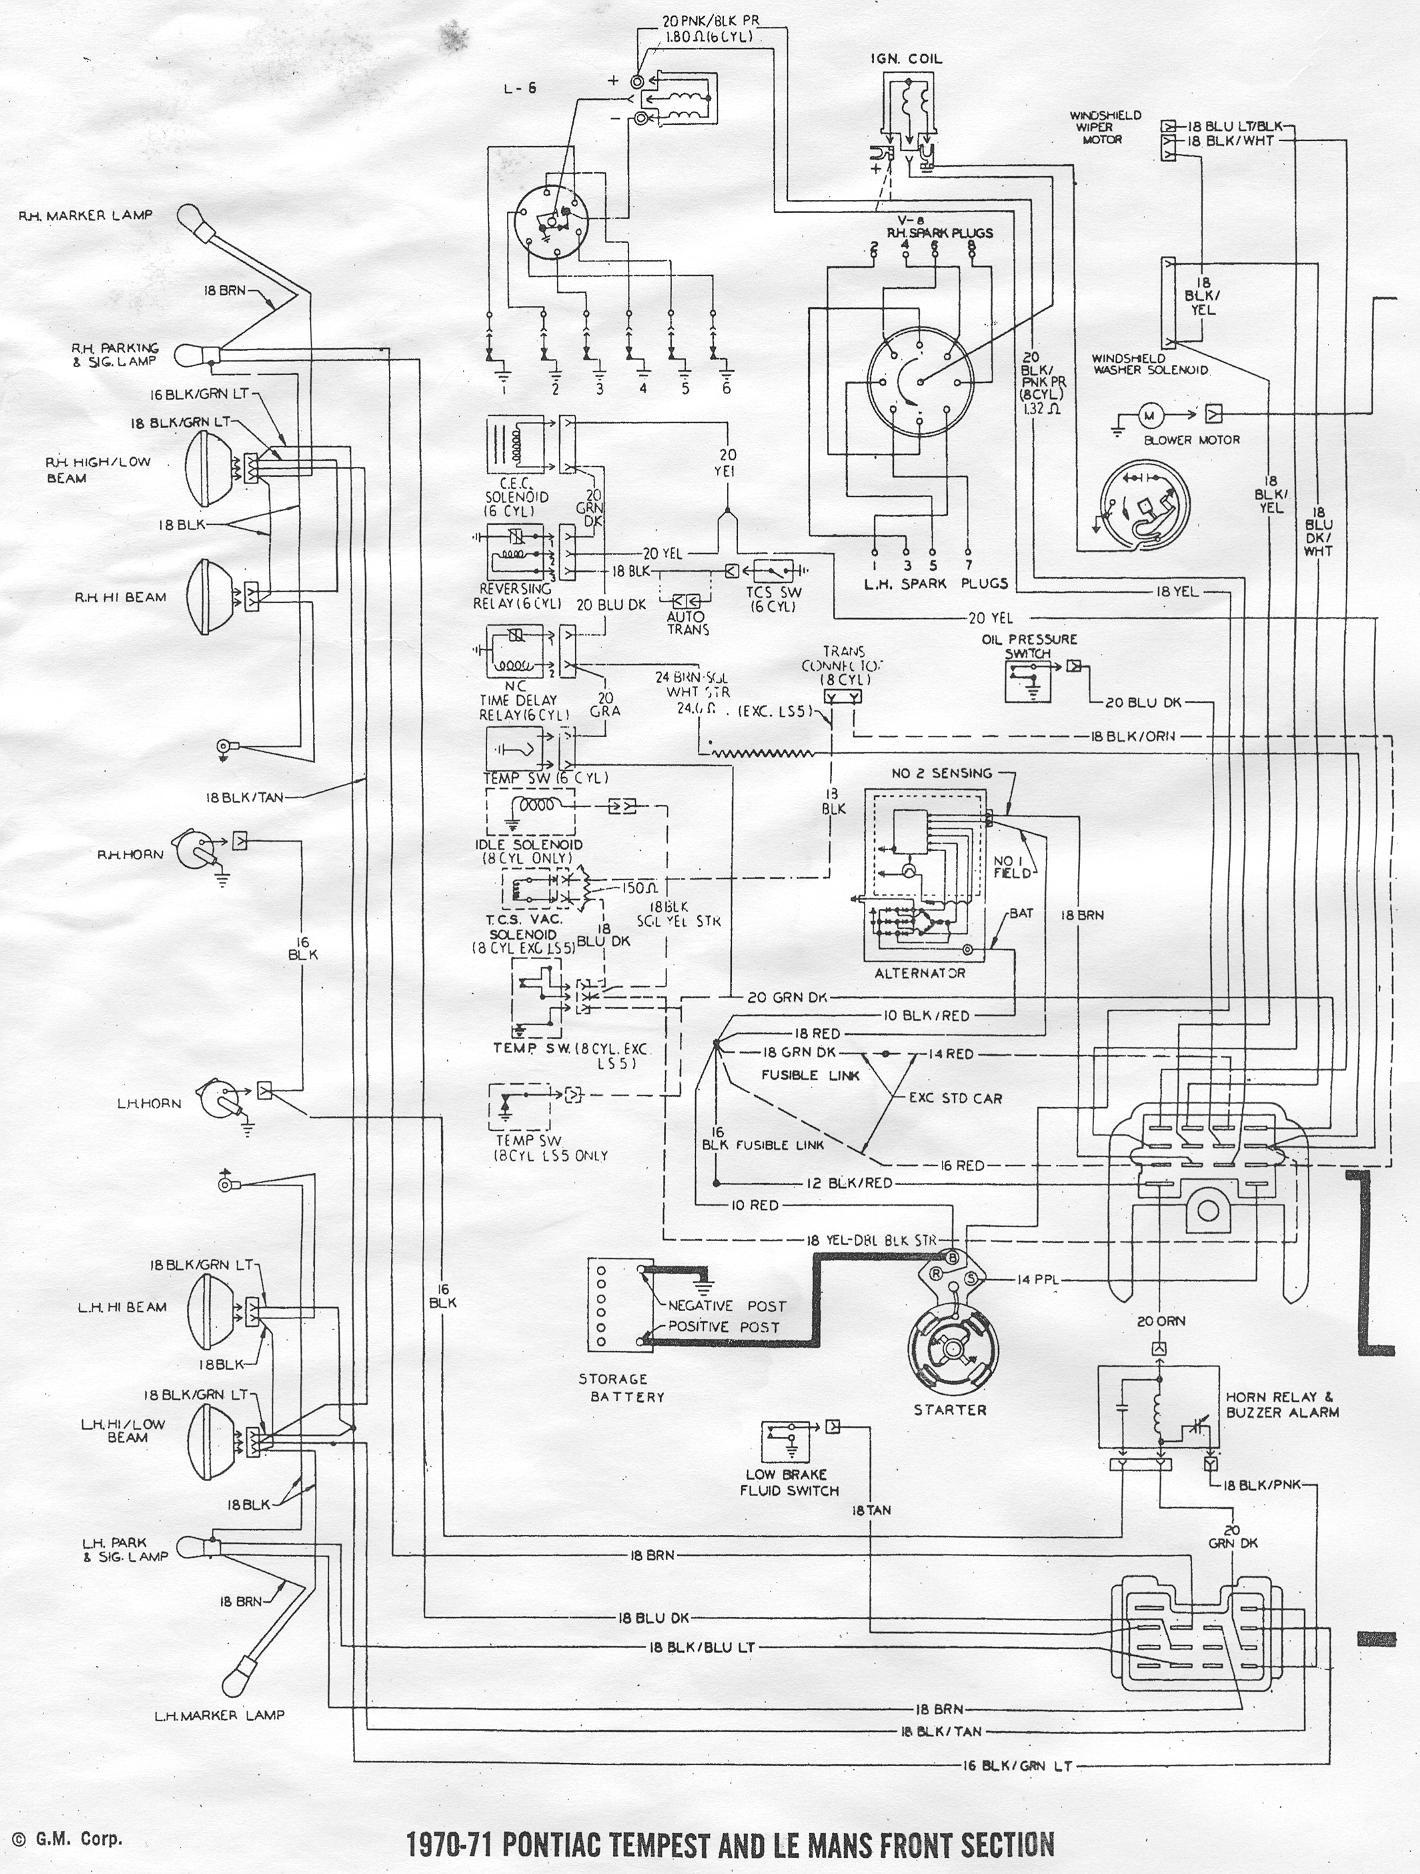 2010 camaro wiring schematic 2010 image wiring diagram 1994 camaro wiring diagram 1994 image wiring diagram on 2010 camaro wiring schematic